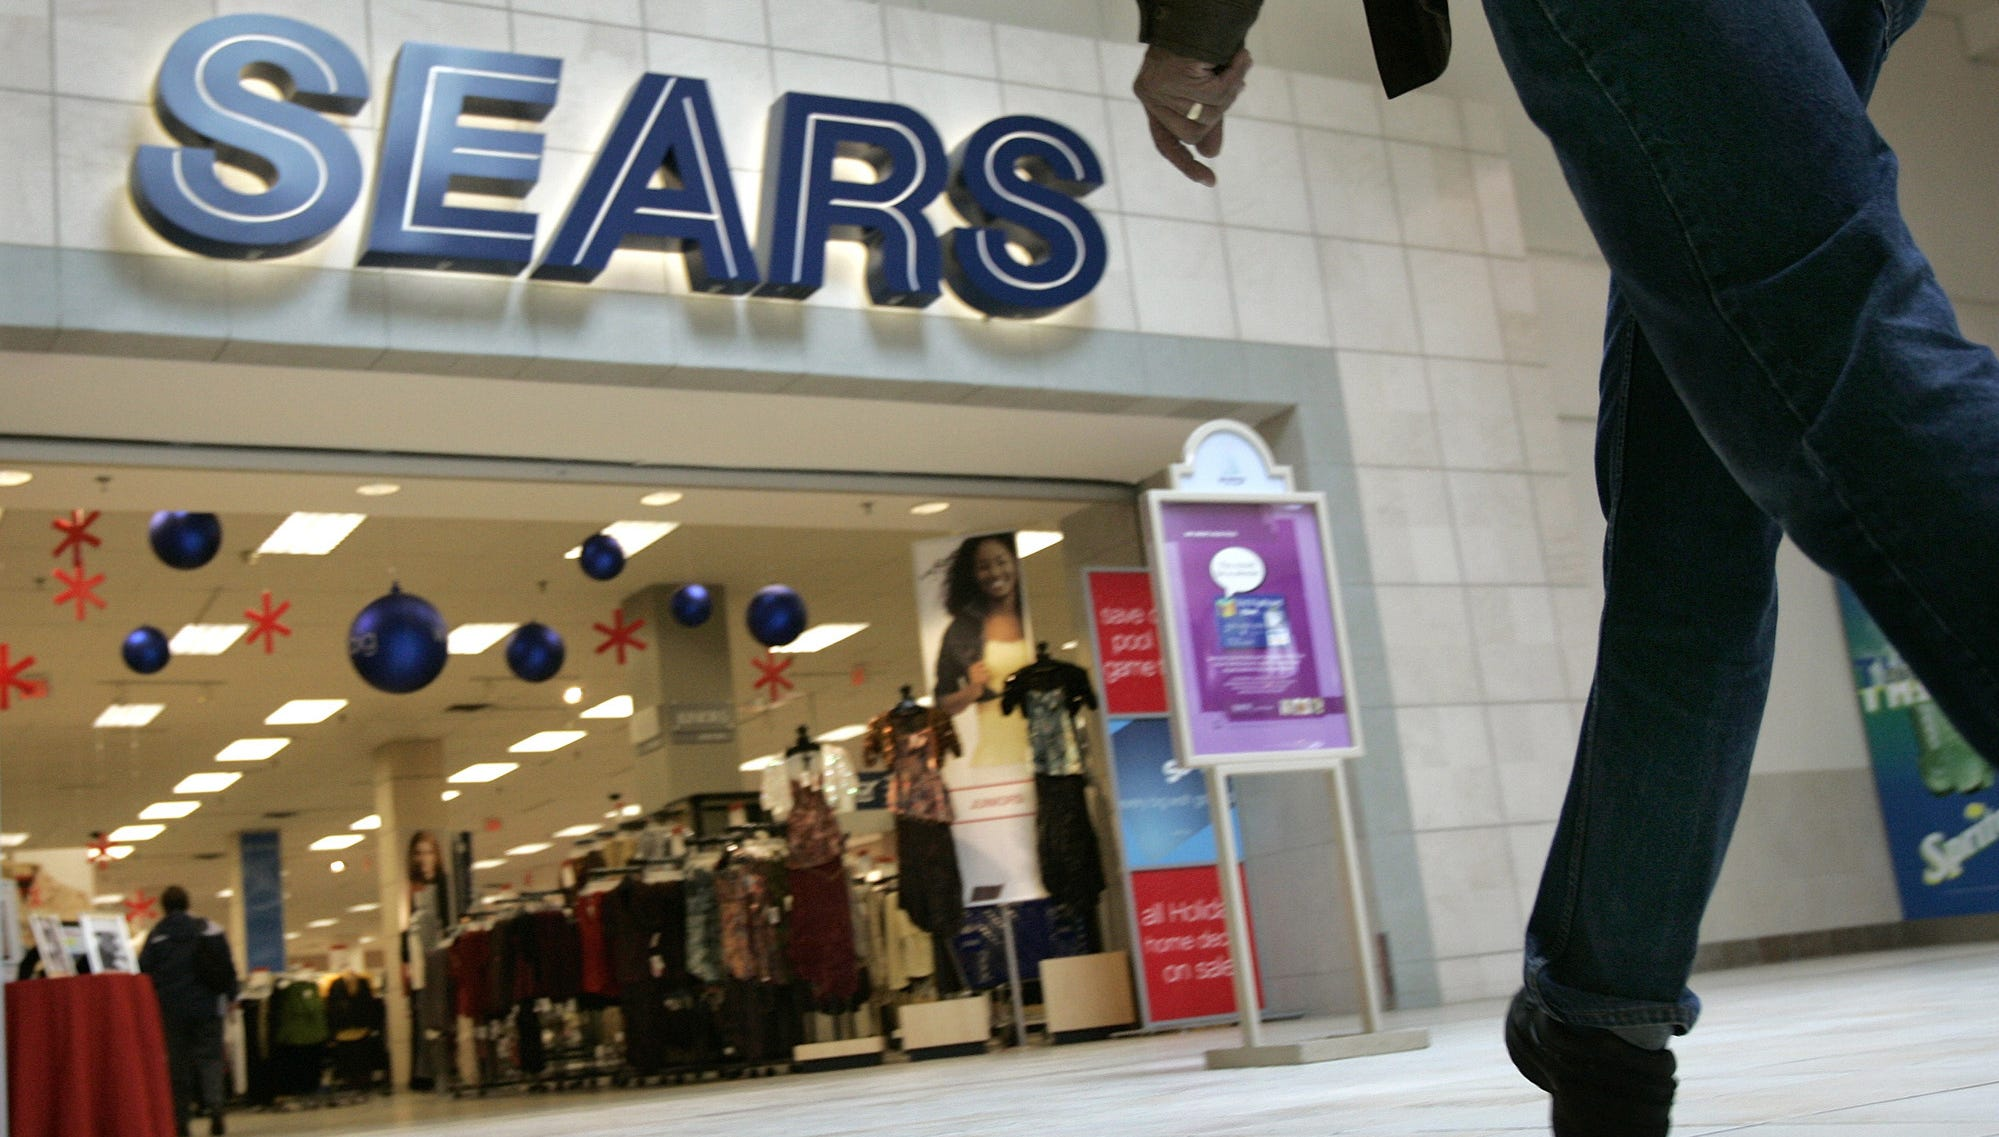 Now bankrupt, Sears transformed retail, just as Amazon did 100 years later